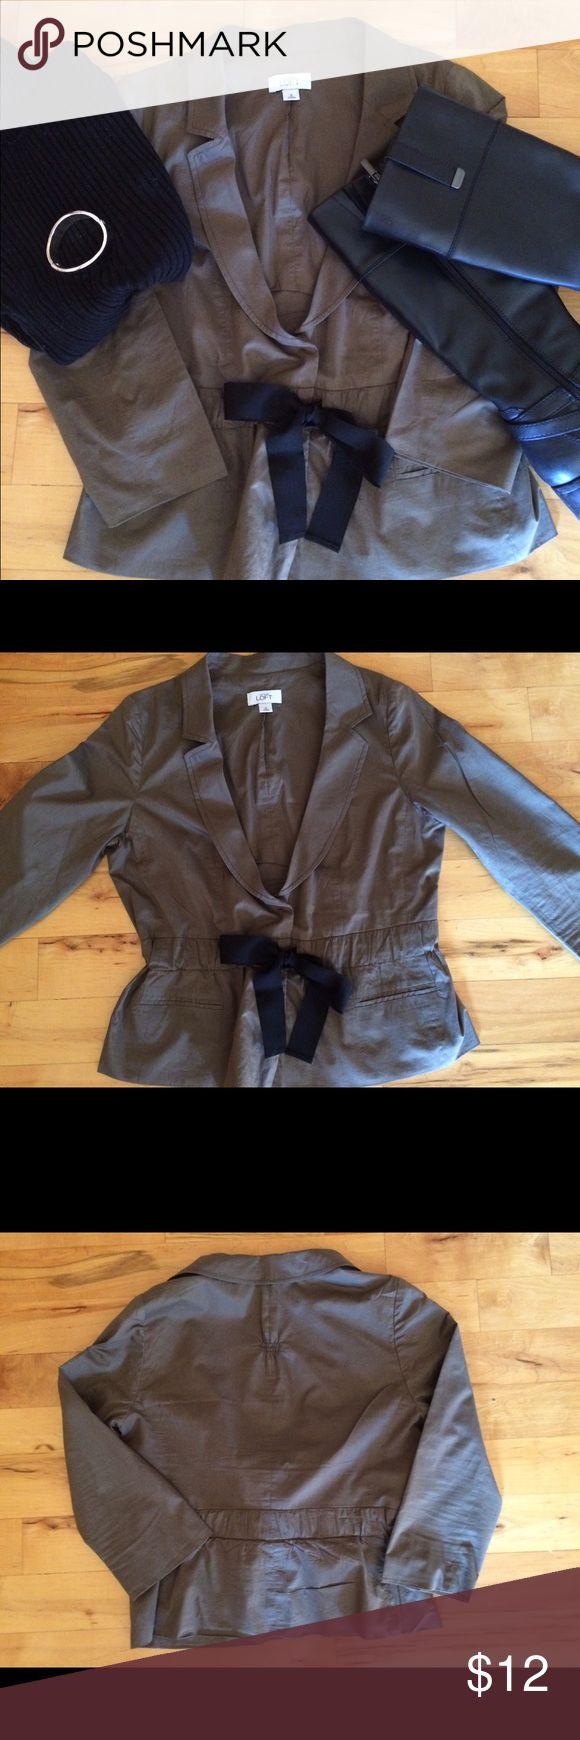 EUC Loft 💯% cotton blazer, size 8 Fully lined 100% cotton blazer has cinched waist with black grosgrain ribbon belt. Great for office with blouse, or weekend with tee. Excellent condition. LOFT Jackets & Coats Blazers